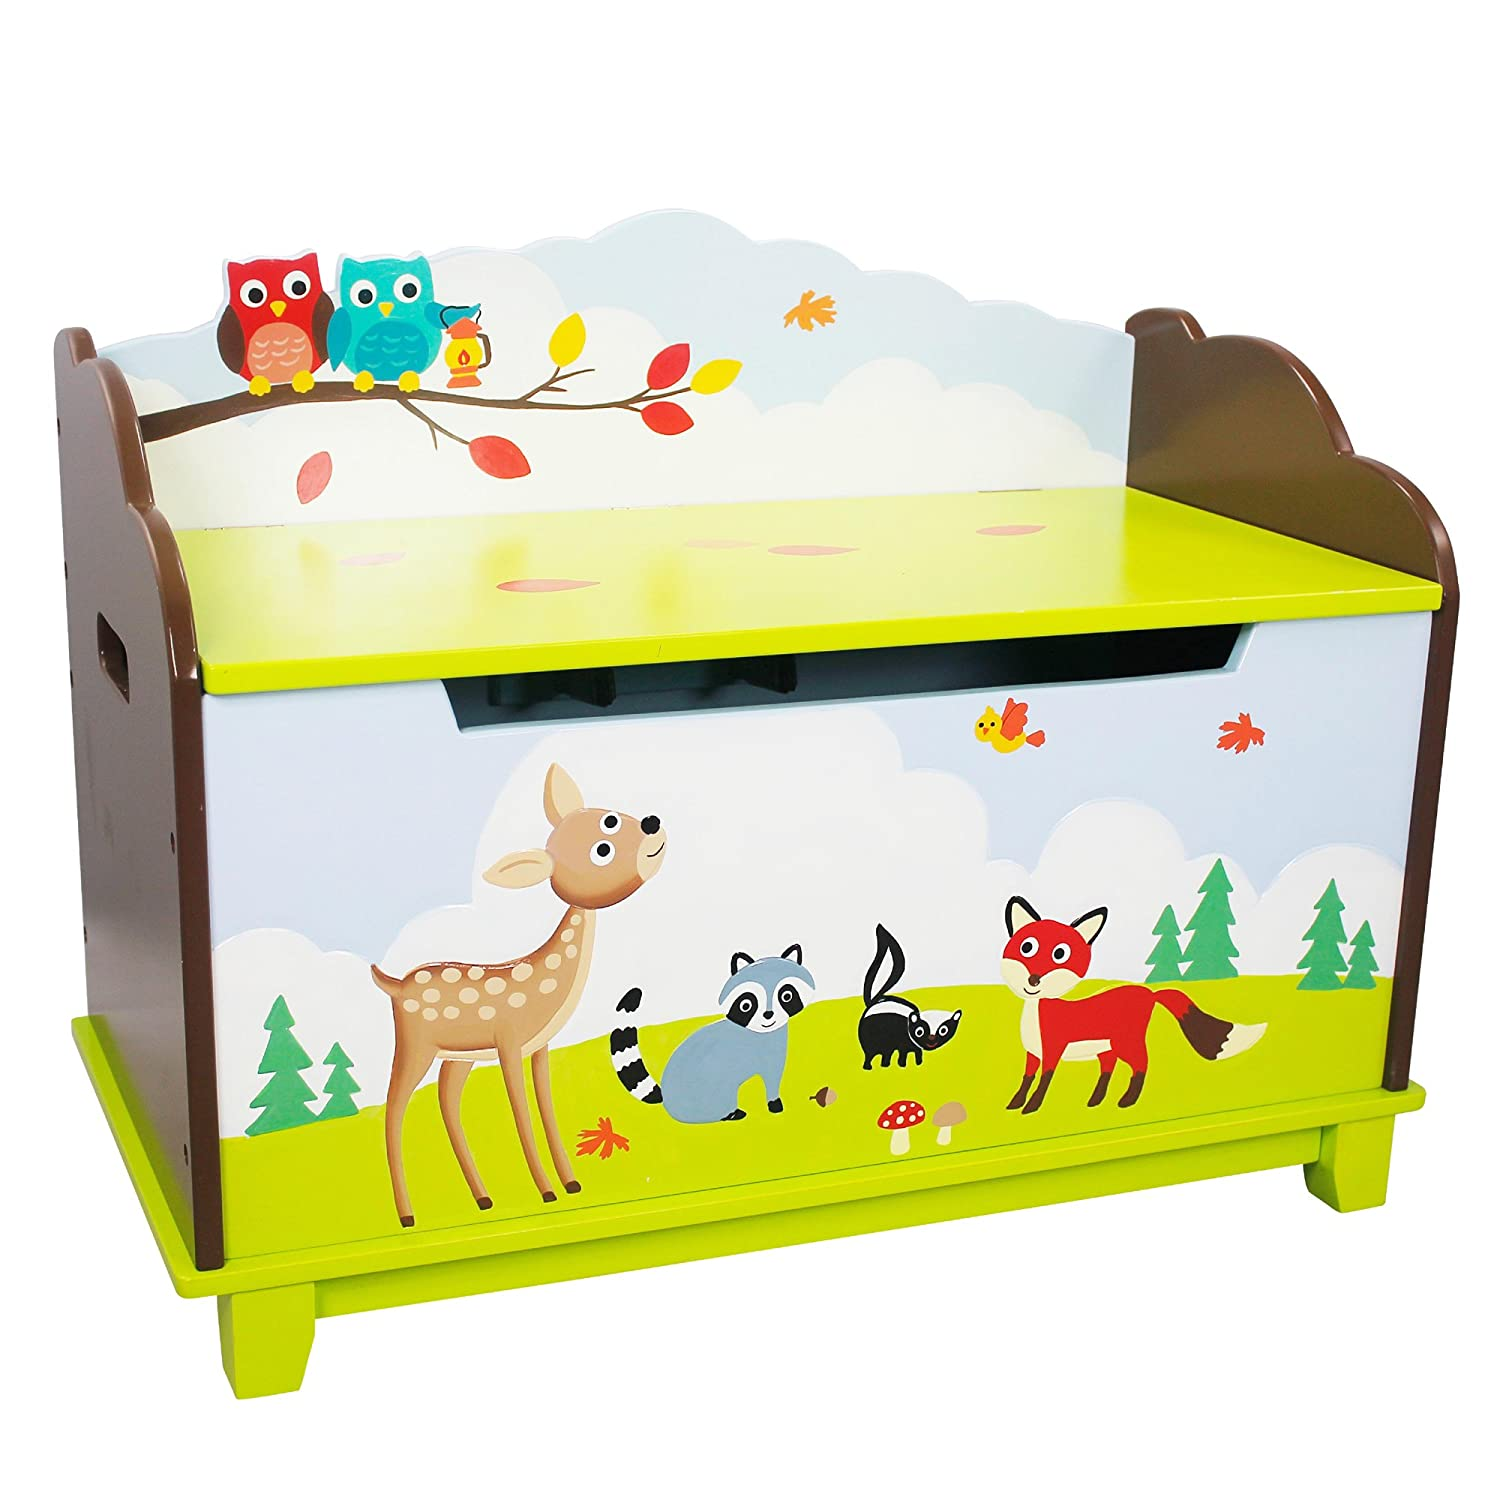 Kids wooden toy chest sunny safari - Amazon Com Fantasy Fields Enchanted Woodland Thematic Kids Wooden Toy Chest With Safety Hinges Imagination Inspiring Hand Crafted Hand Painted